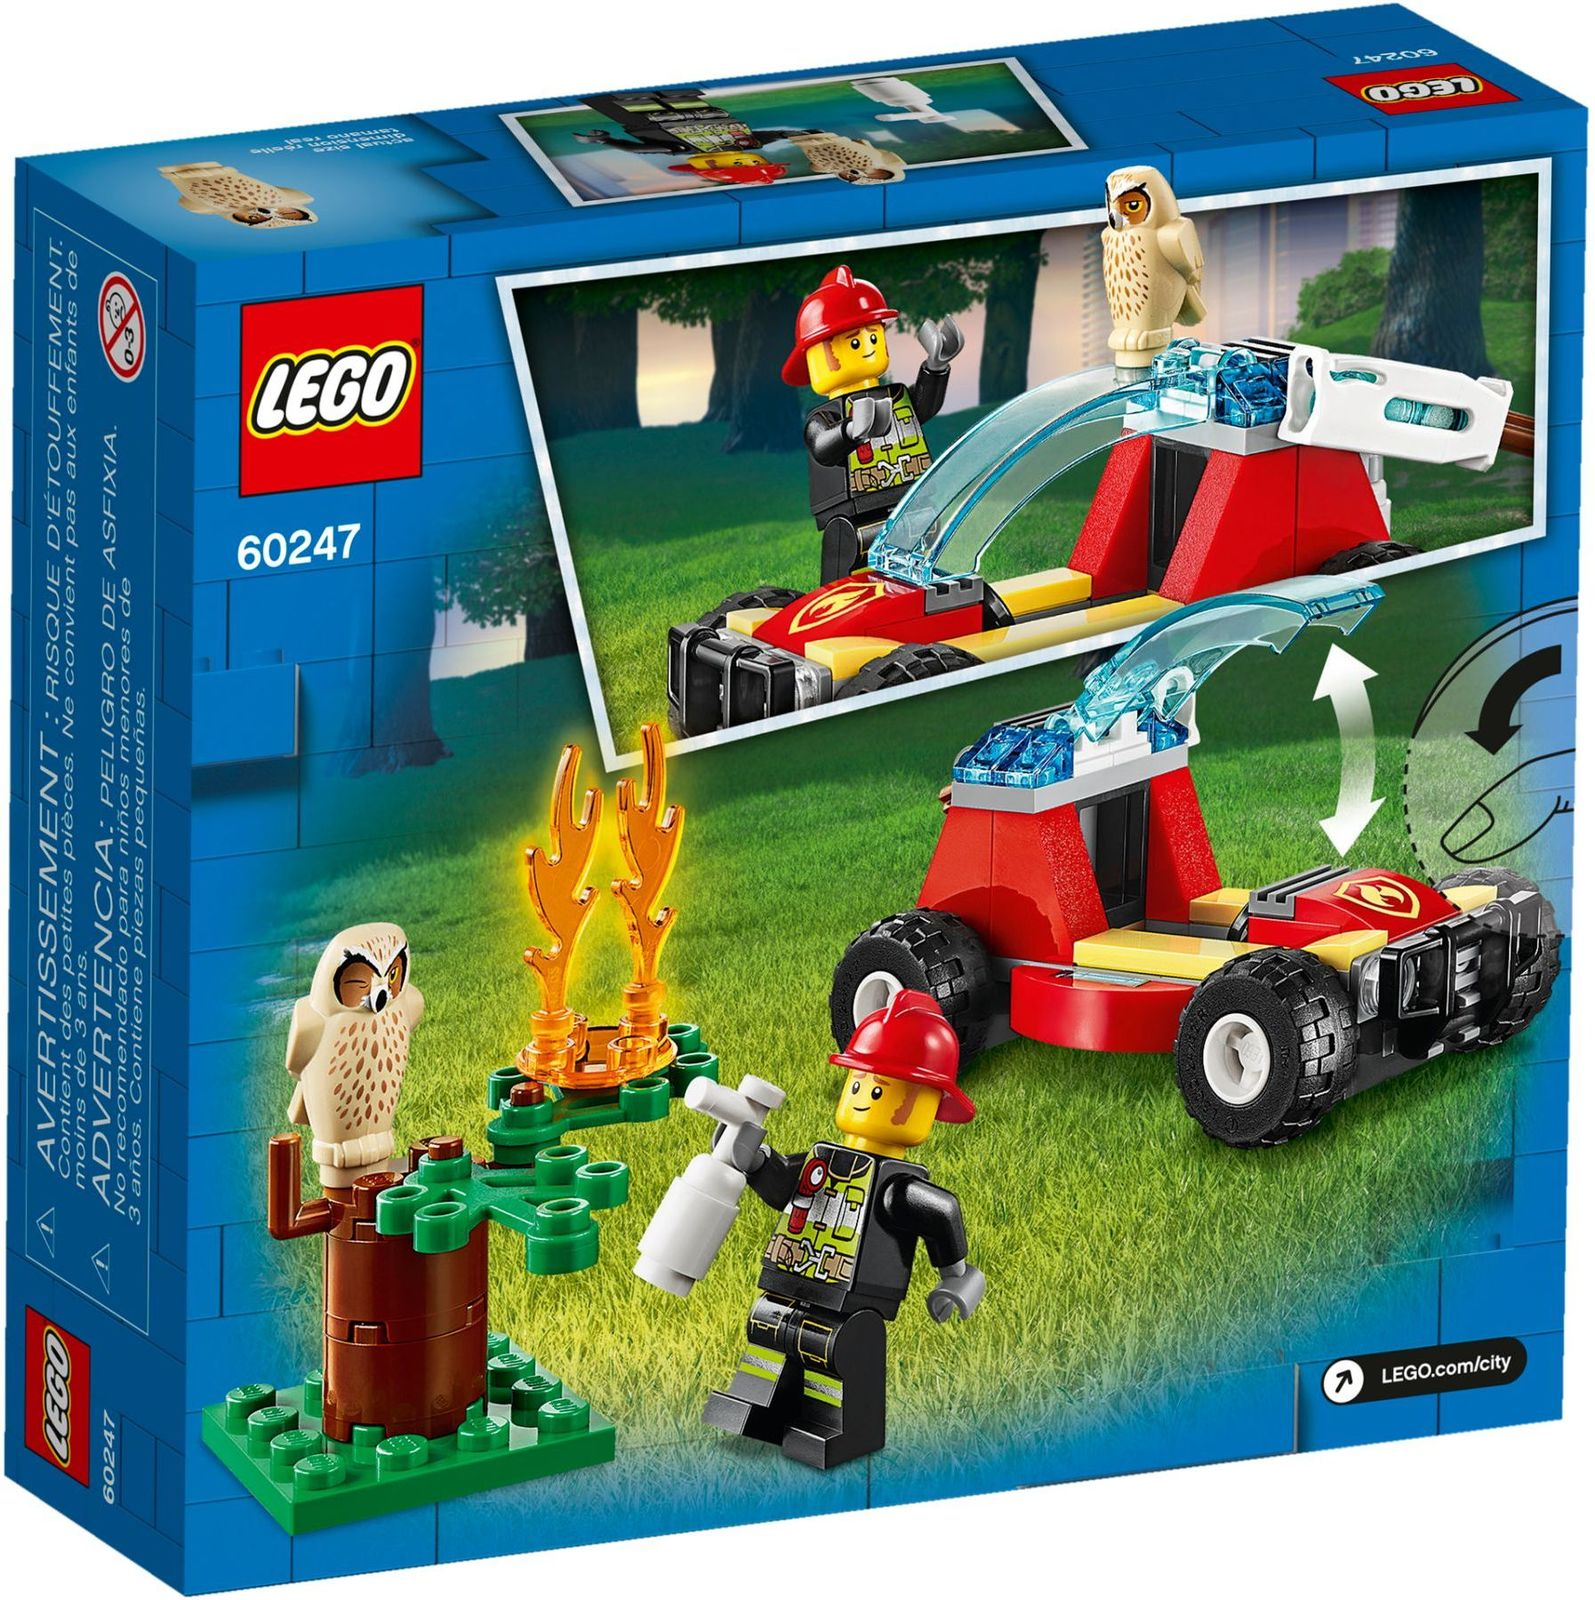 LEGO City: Forest Fire - (60247) image